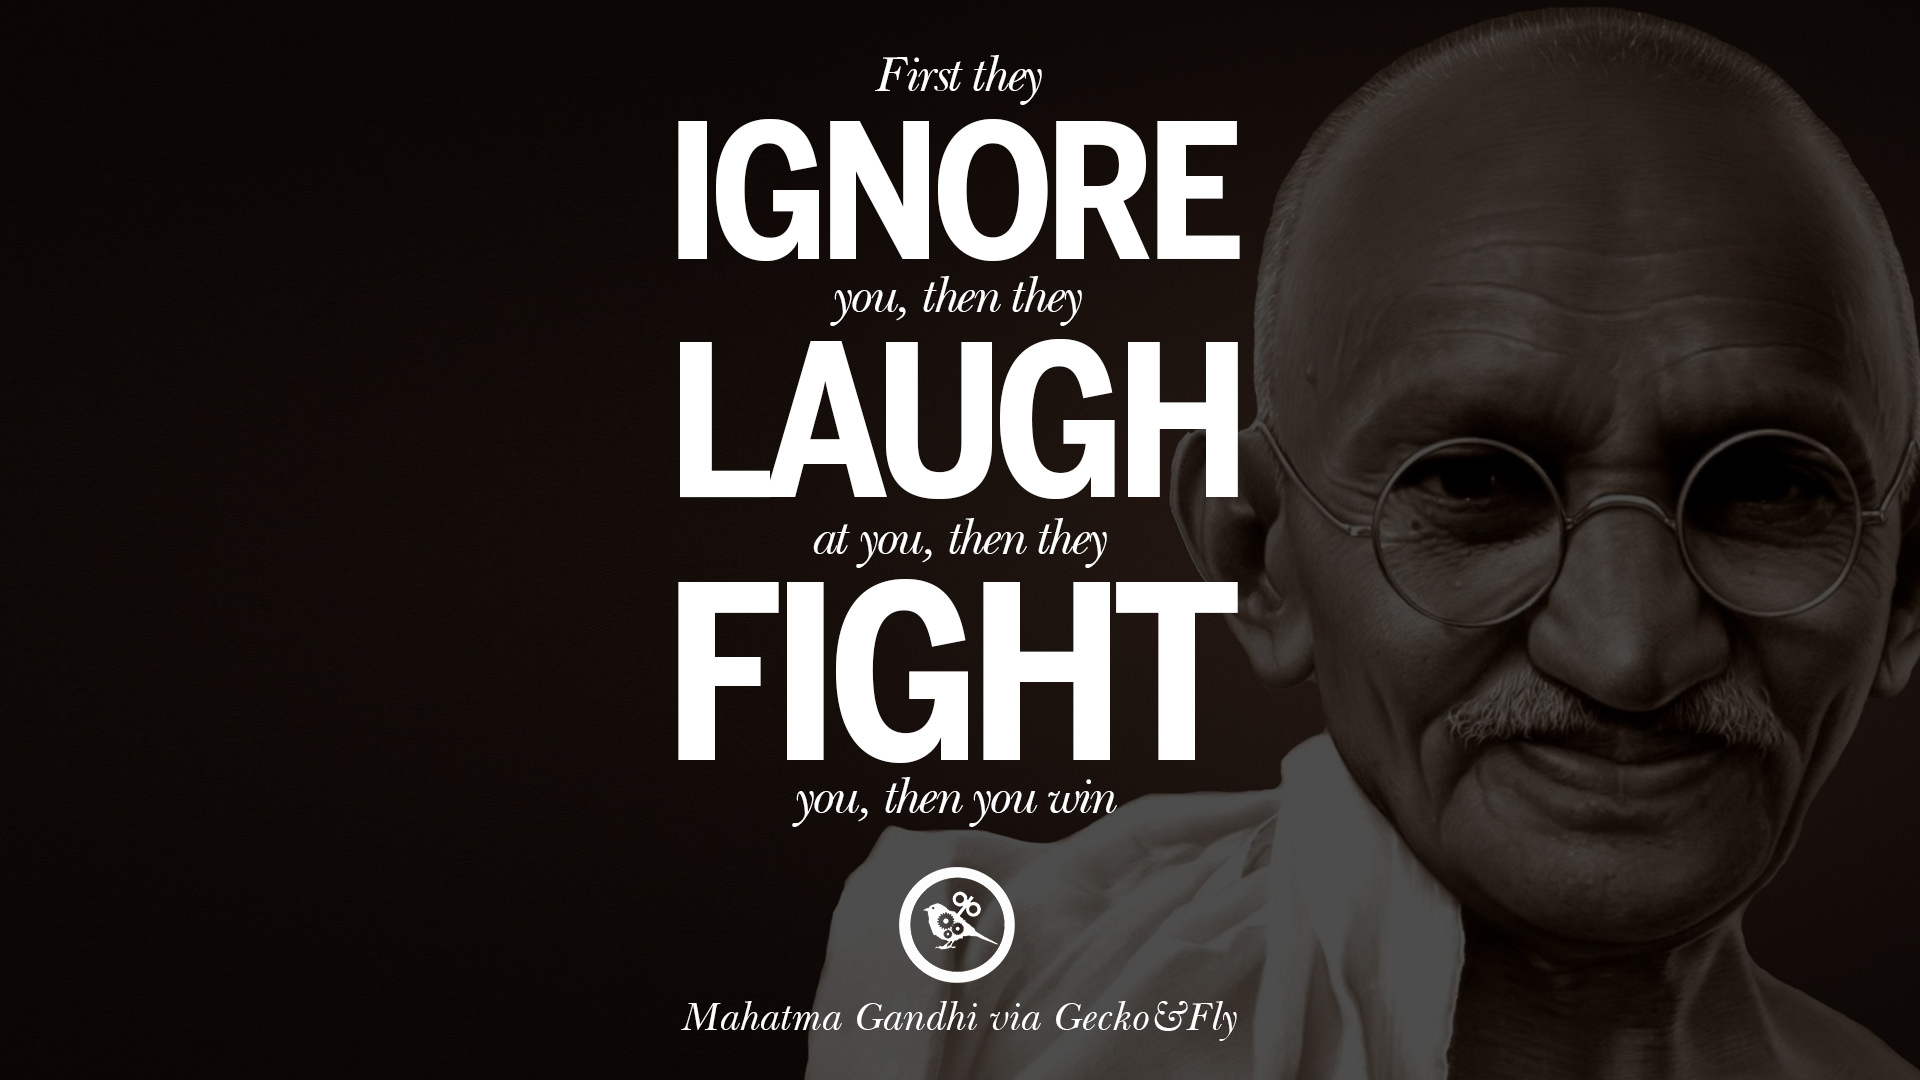 Mahatma Gandhi Quotes On Love Inspiration 20 Mahatma Gandhi Quotes And Frases On Peace Protest And Civil